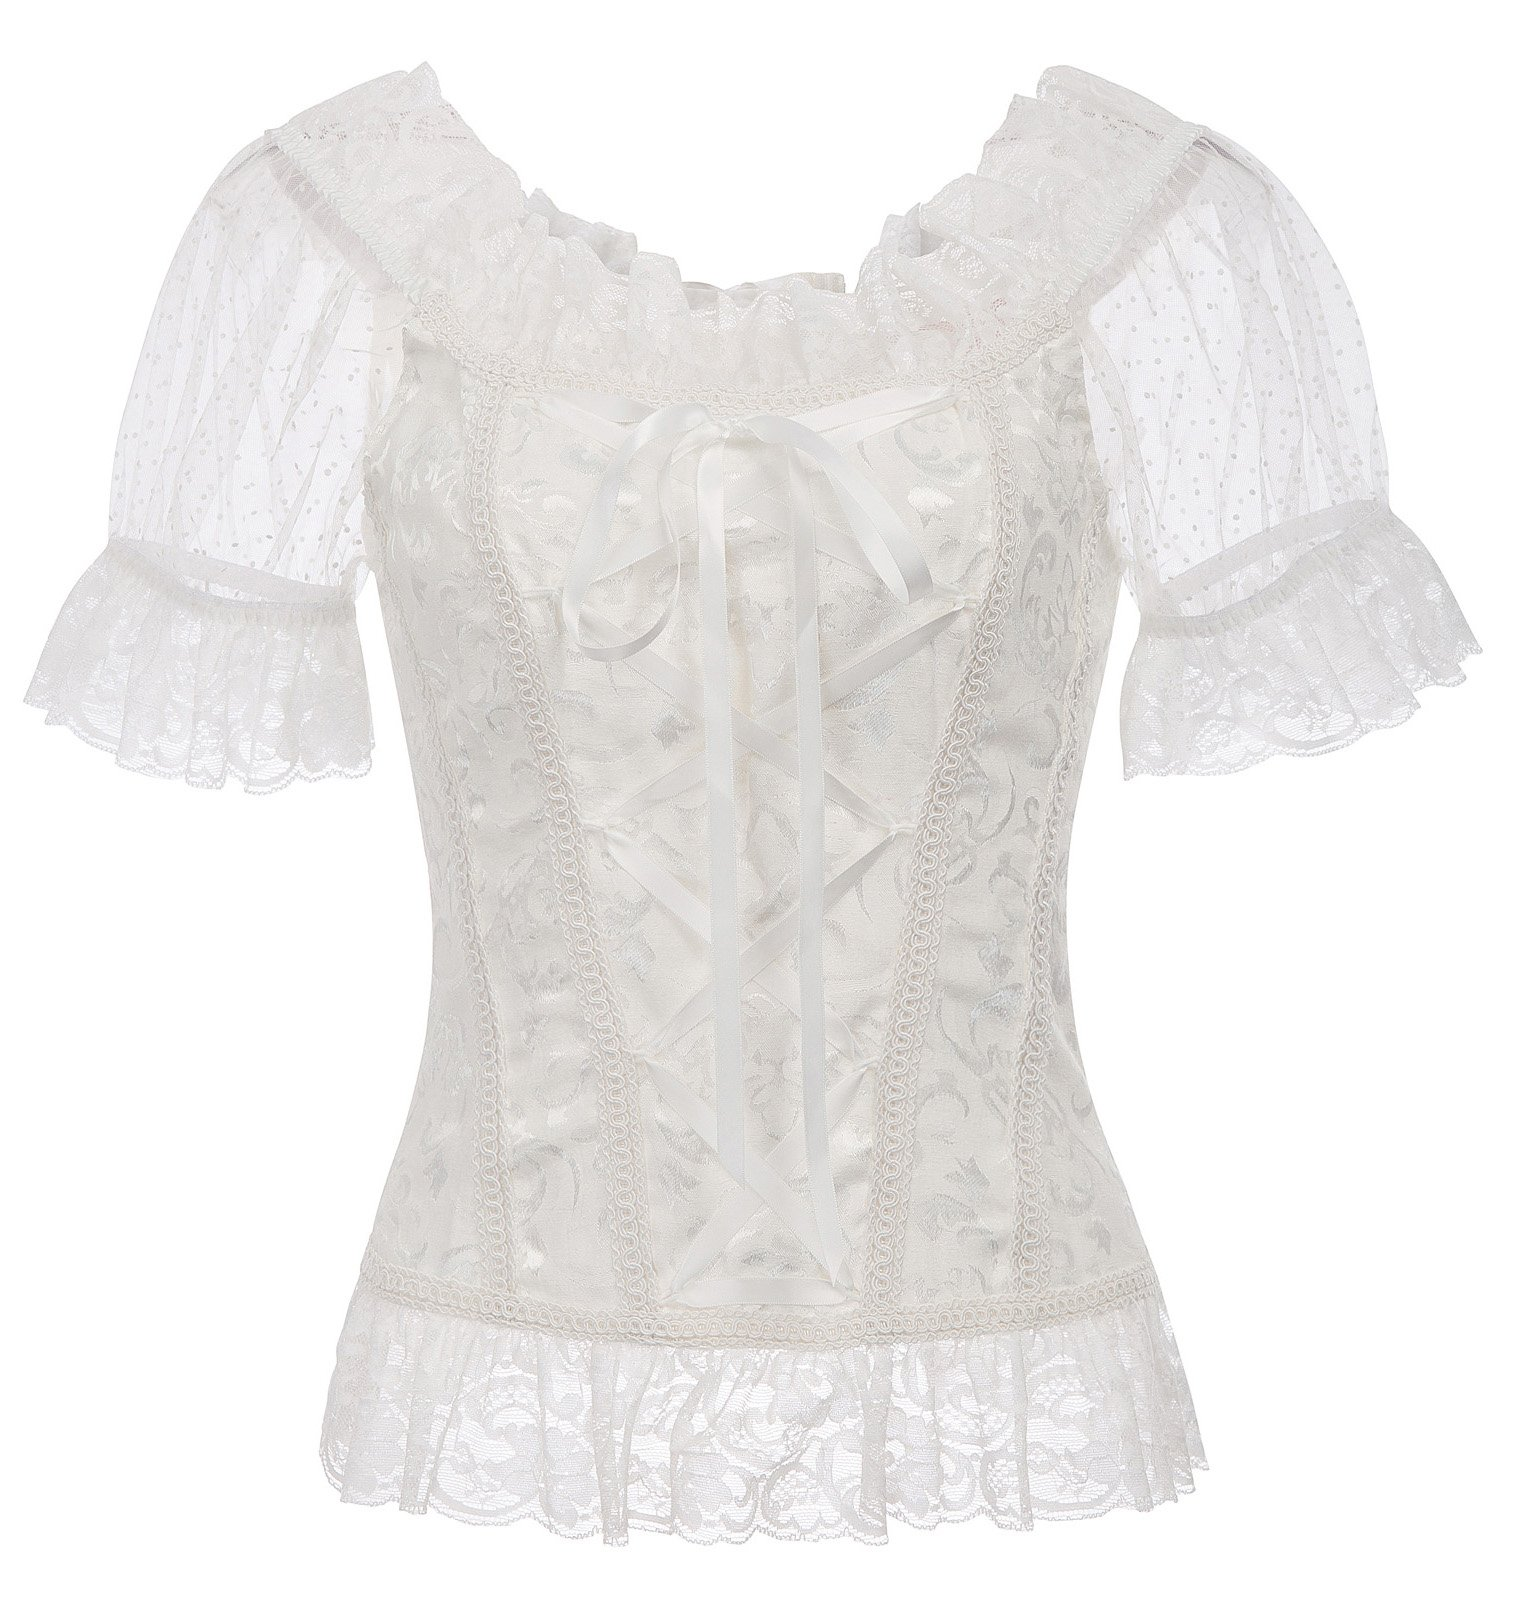 Belle Poque Women's Steampunk Sexy Jacquard Short Sleeve Lace Tops BP000509-2 XL White